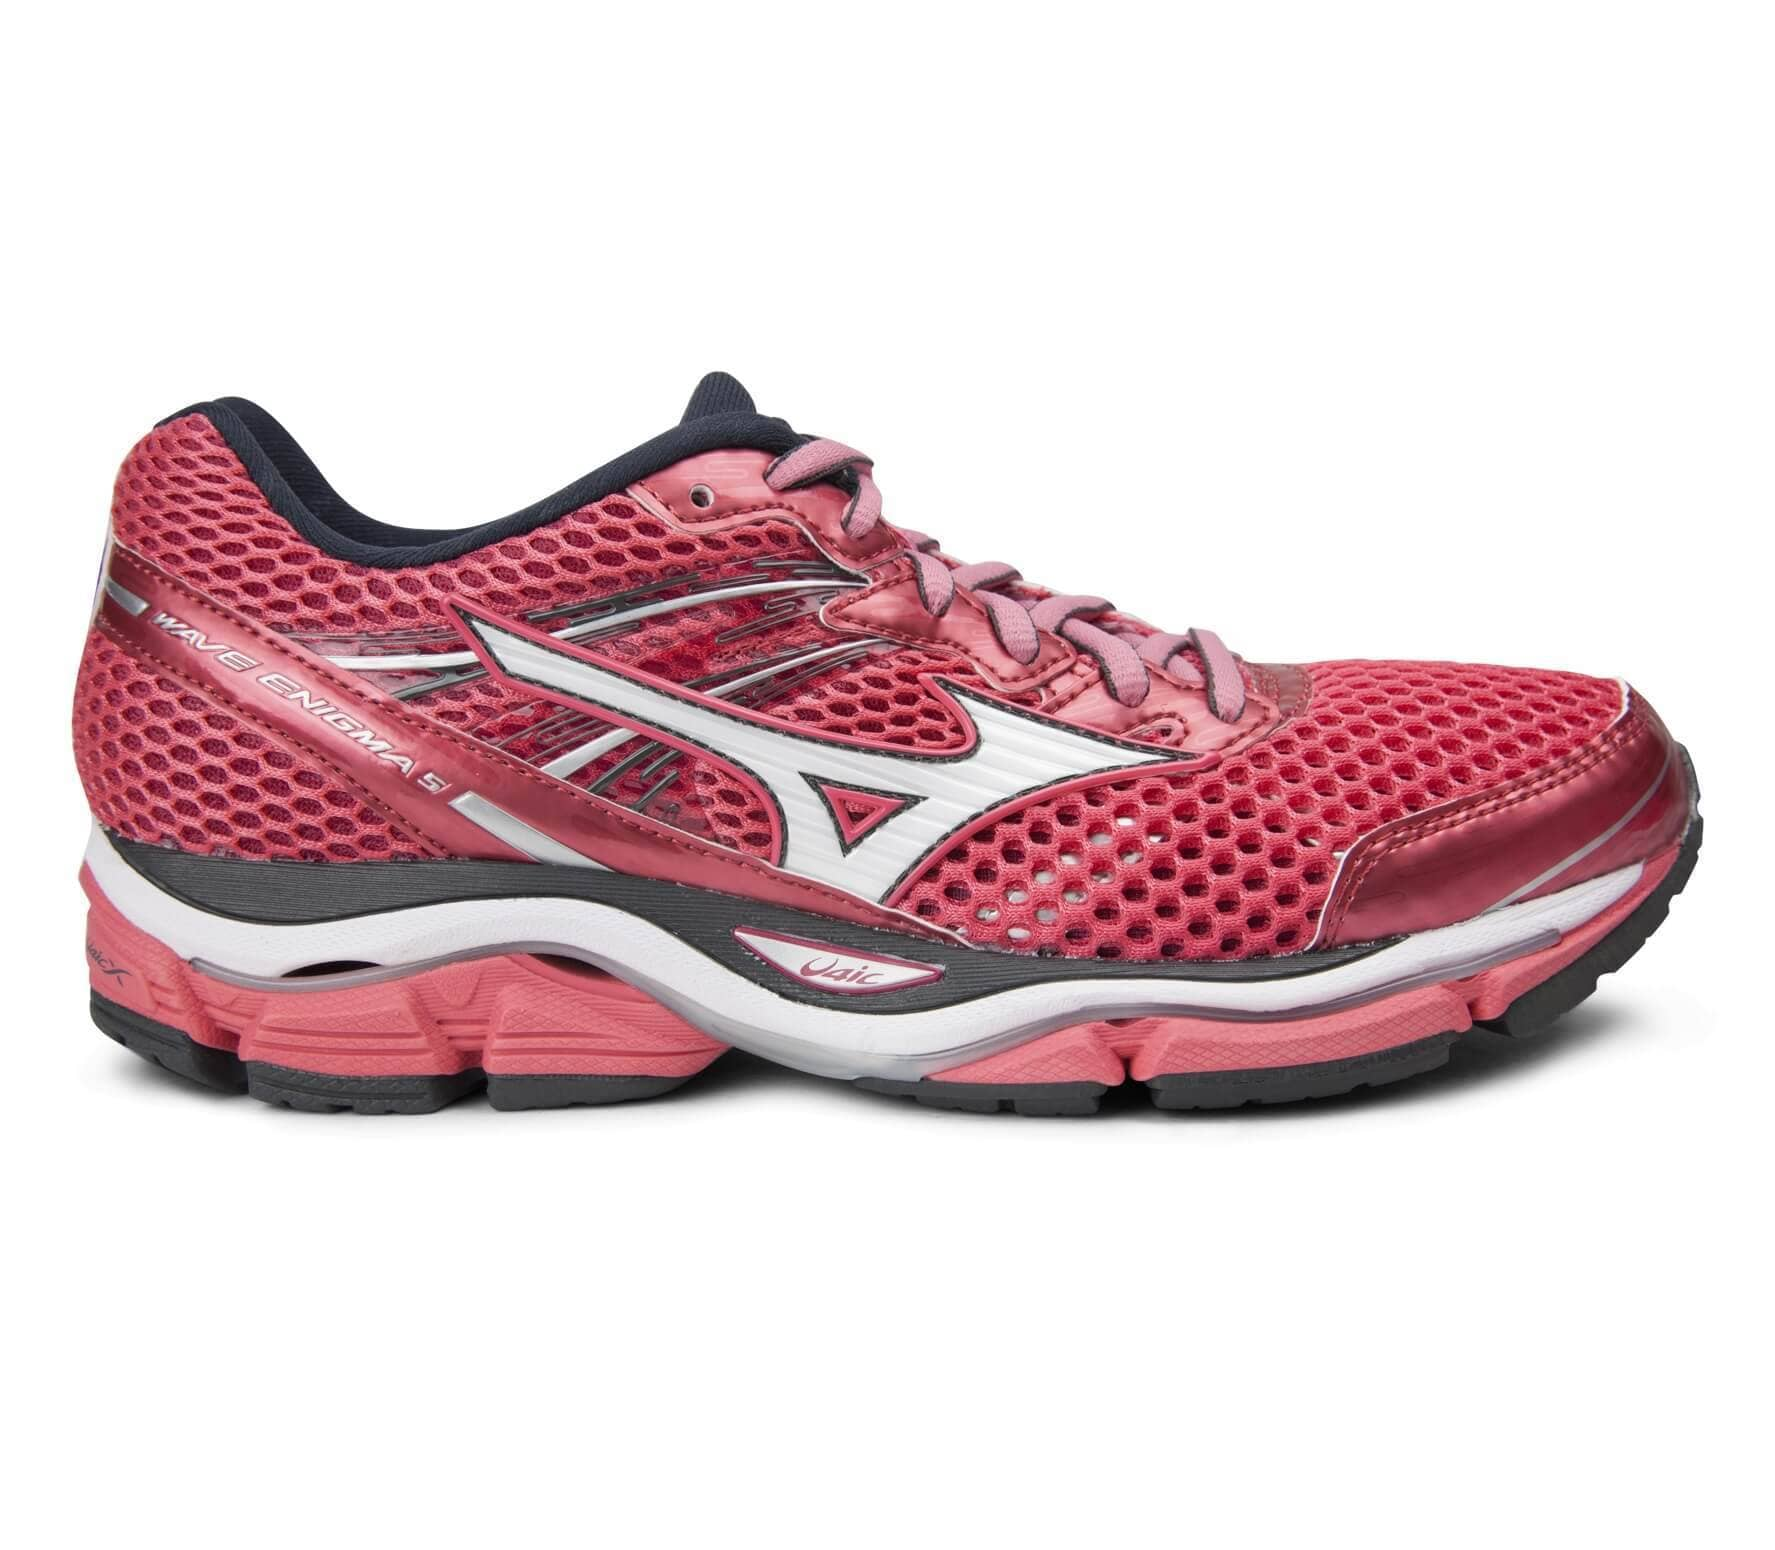 mizuno wave enigma 5 women 39 s running shoes pink dark grey buy it at the keller sports. Black Bedroom Furniture Sets. Home Design Ideas